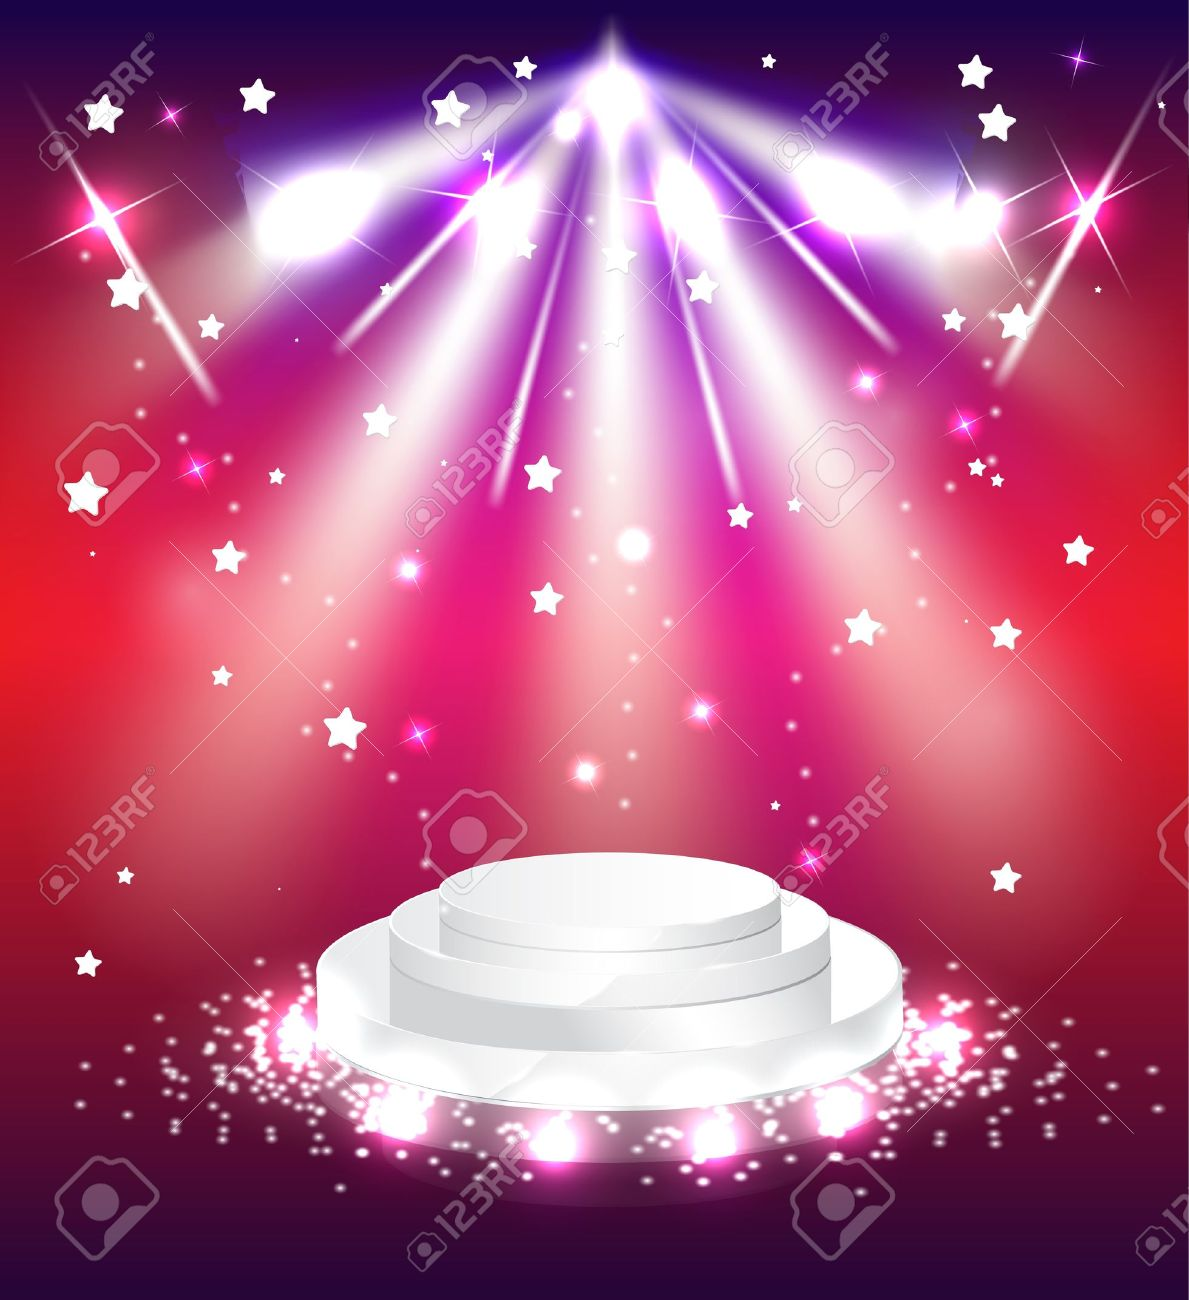 podium with lights scene background stage Stock Vector - 15379613